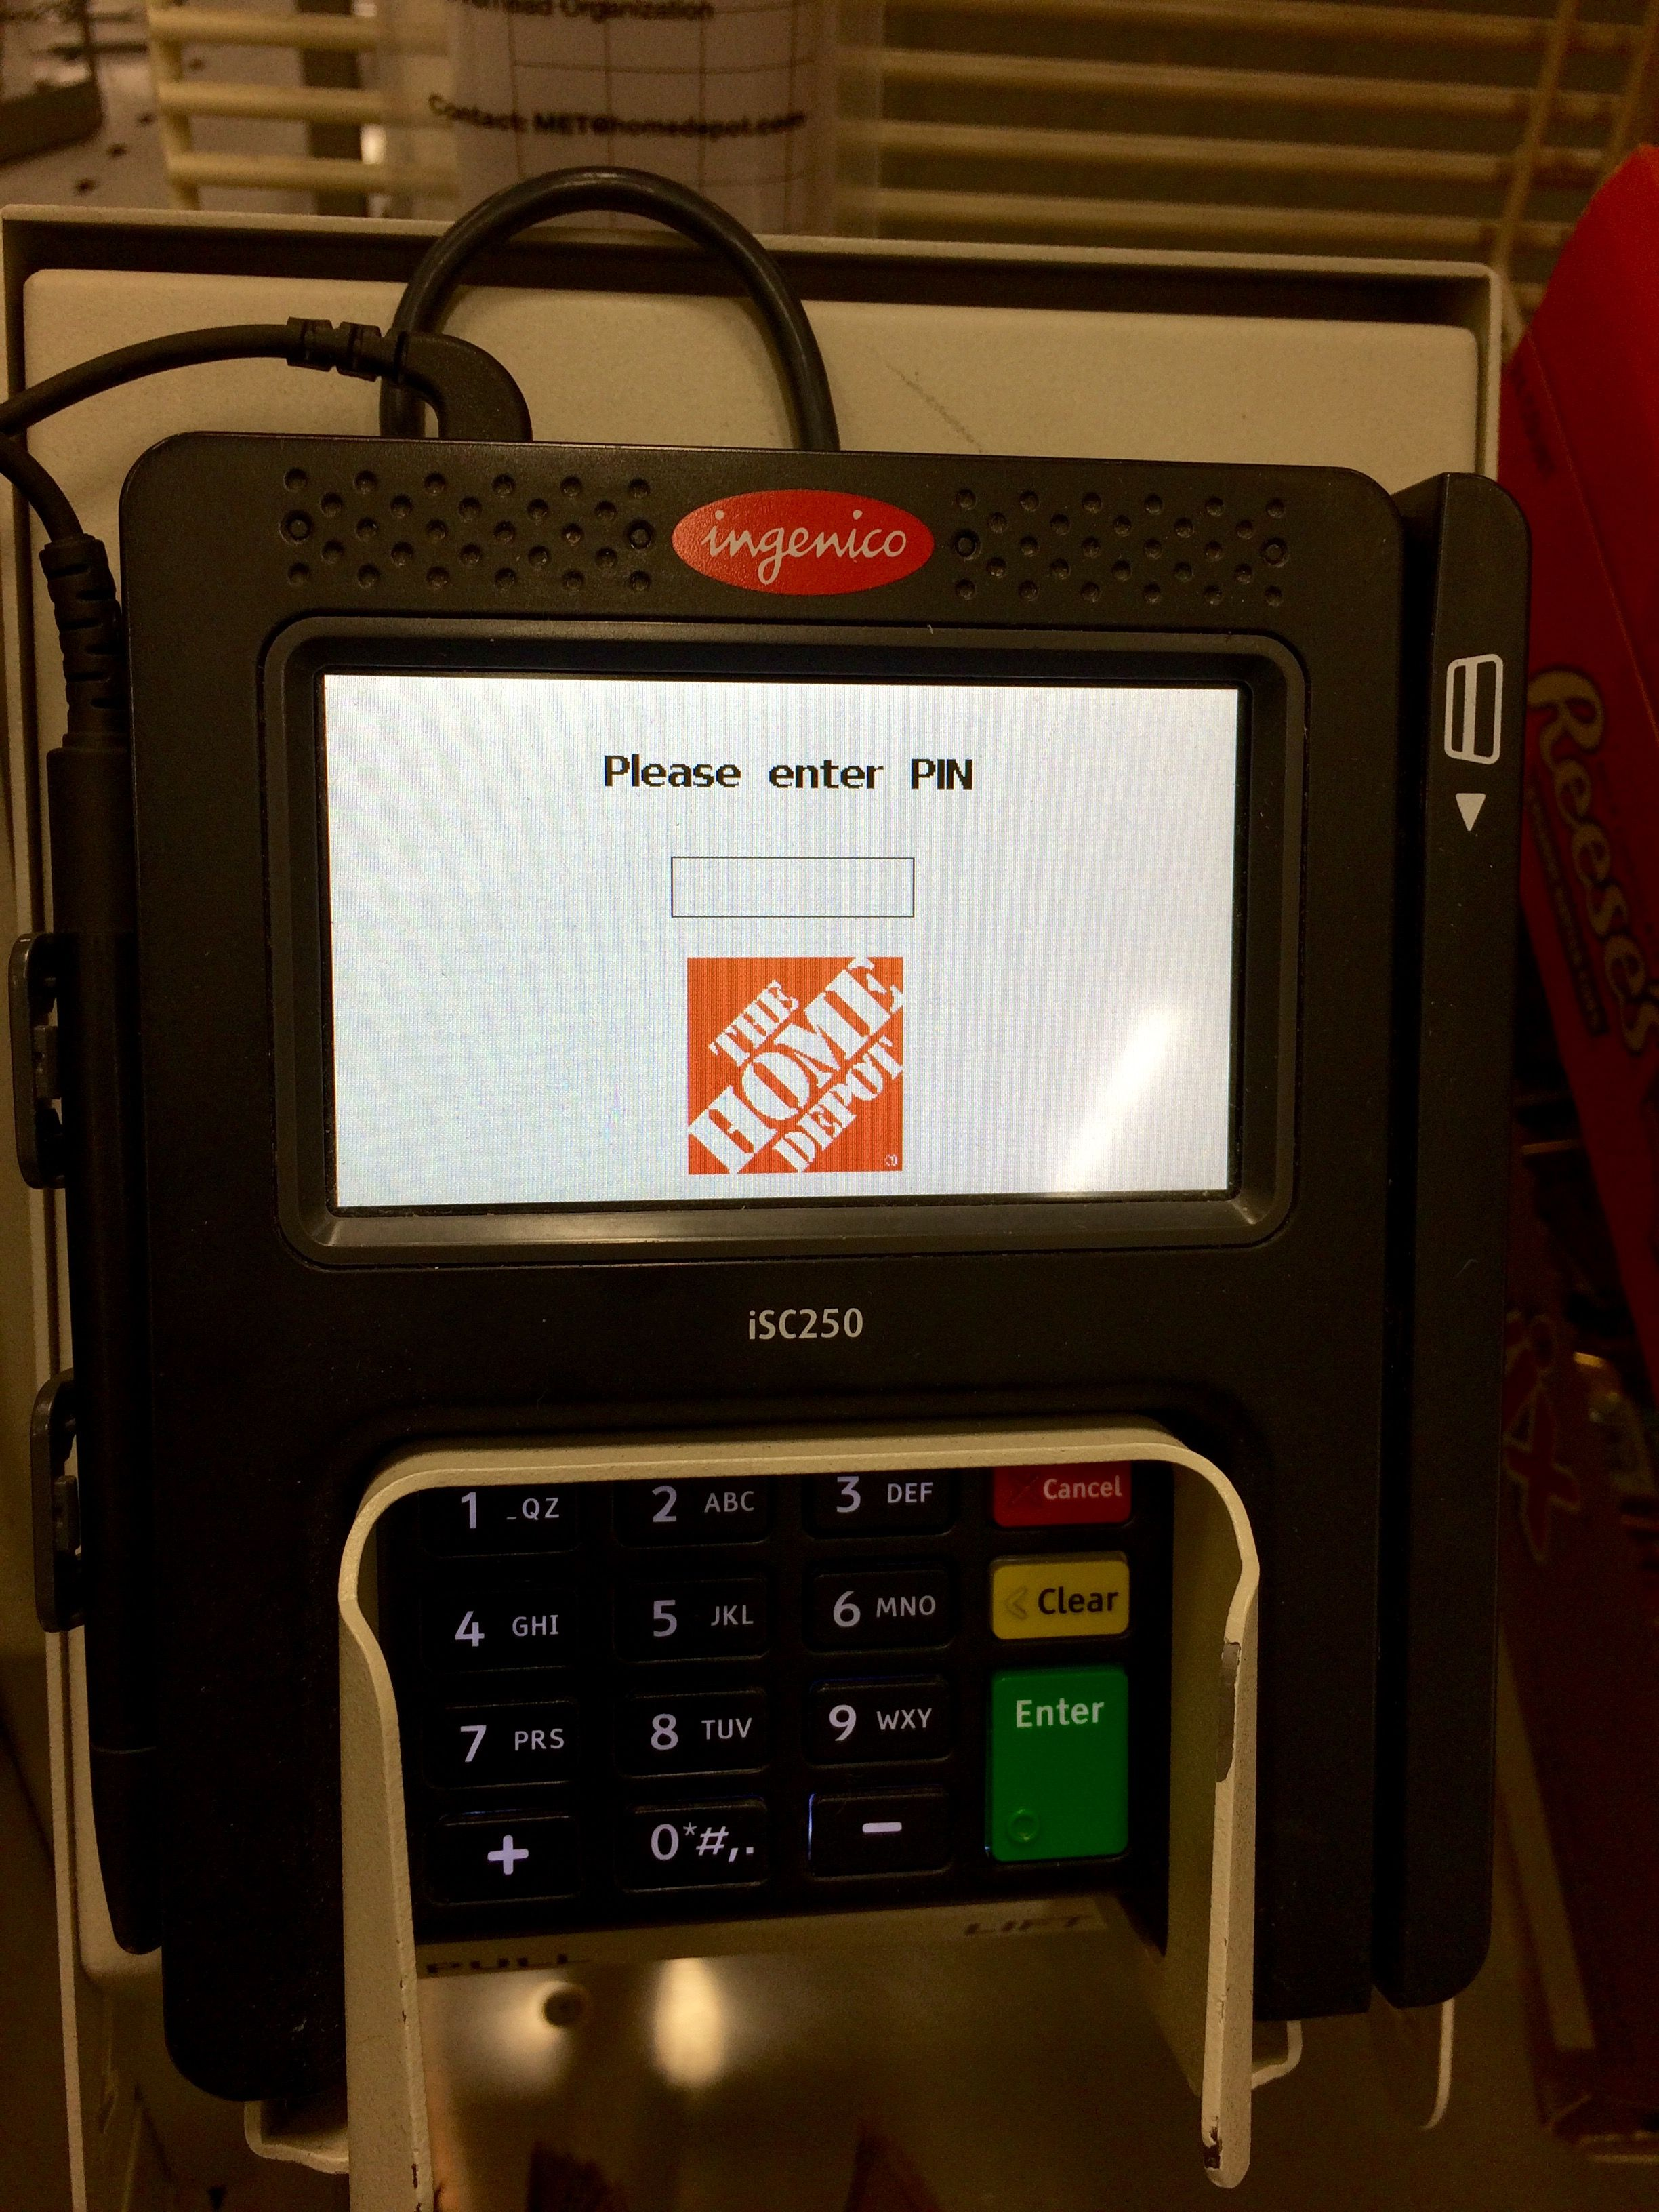 Spotted Ingenico Group s iSC250 at Home Depot Check out all of the